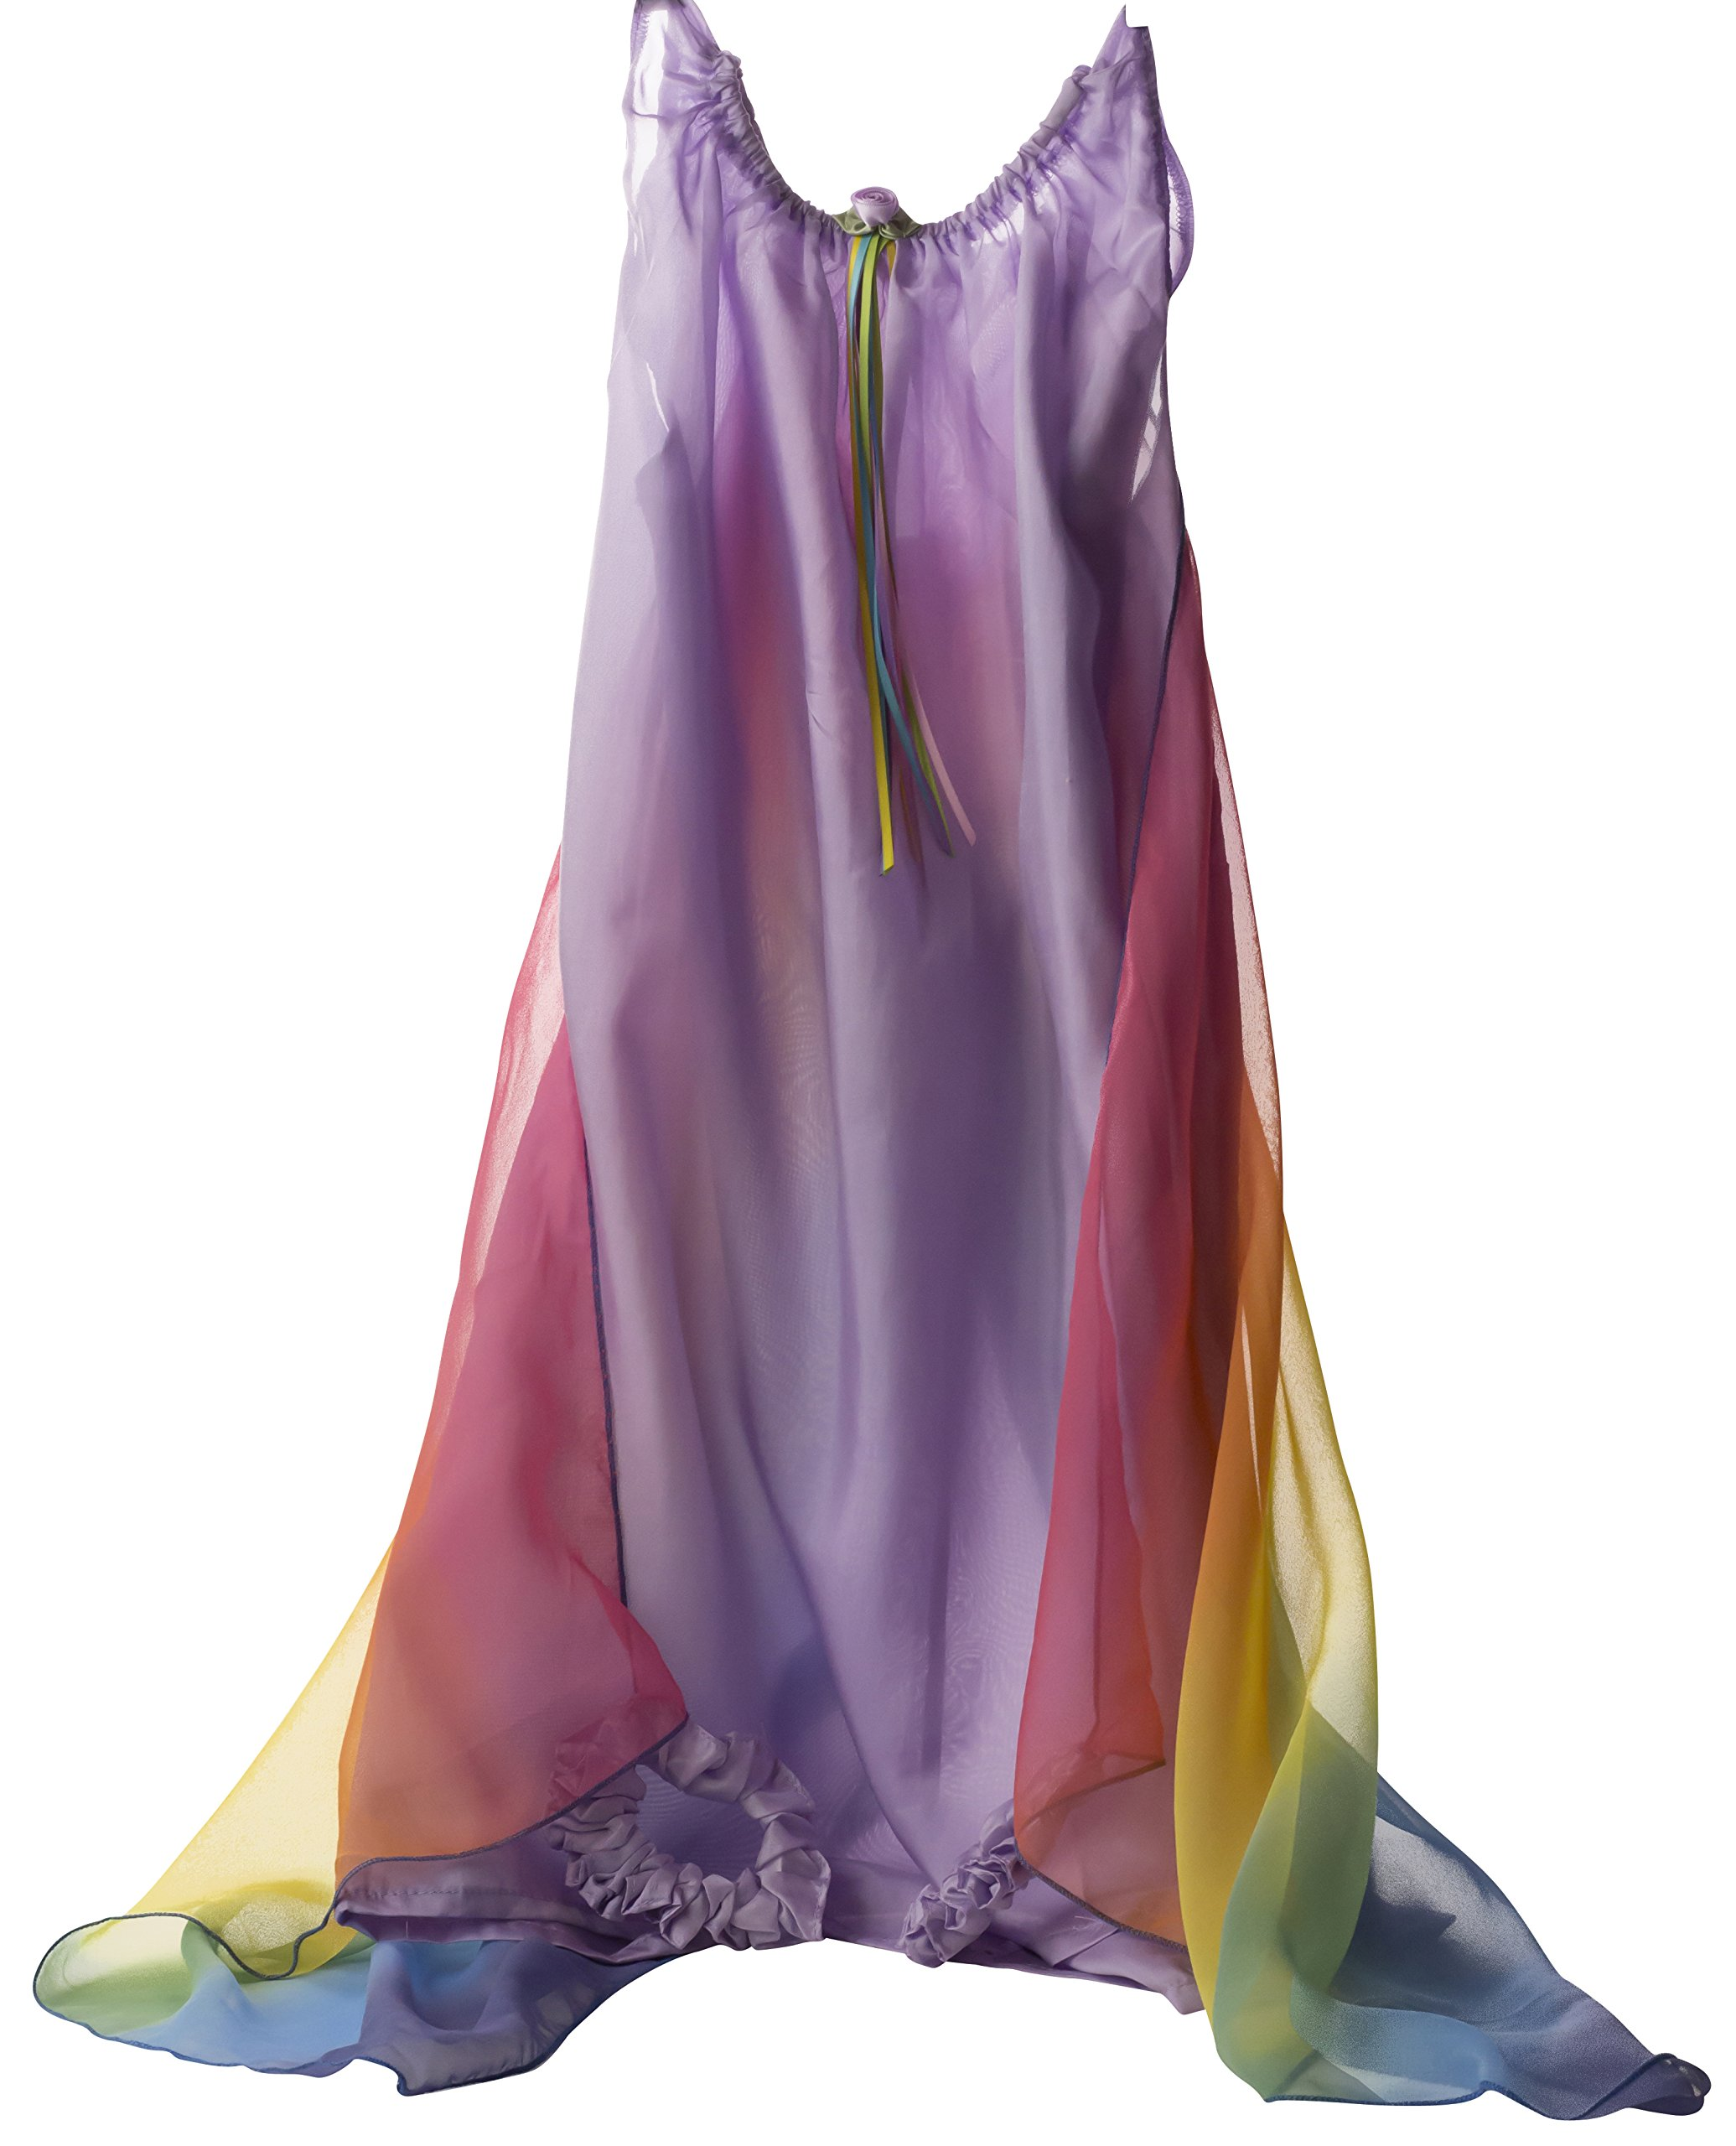 Sarah's Silks Fairy Dress in Lavender with Rainbow Wings by Sarah's Silks (Image #1)